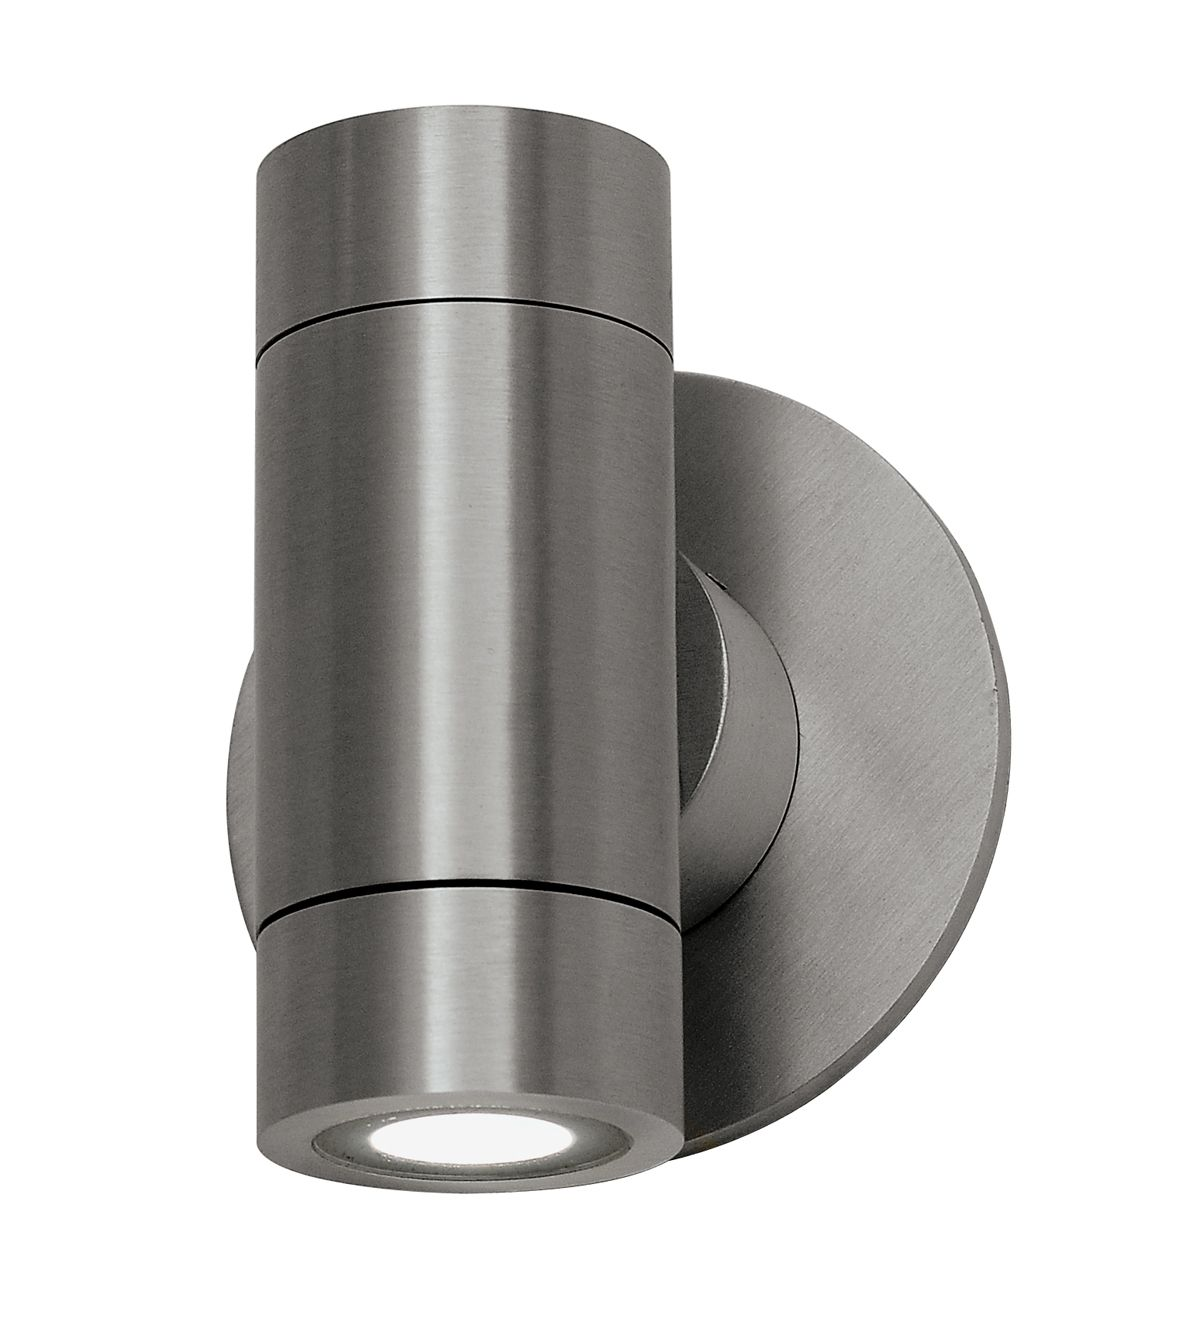 Taos round led wall sconce by edge lighting taos w rd led sa taos round led wall sconce by edge lighting taos w rd led arubaitofo Gallery